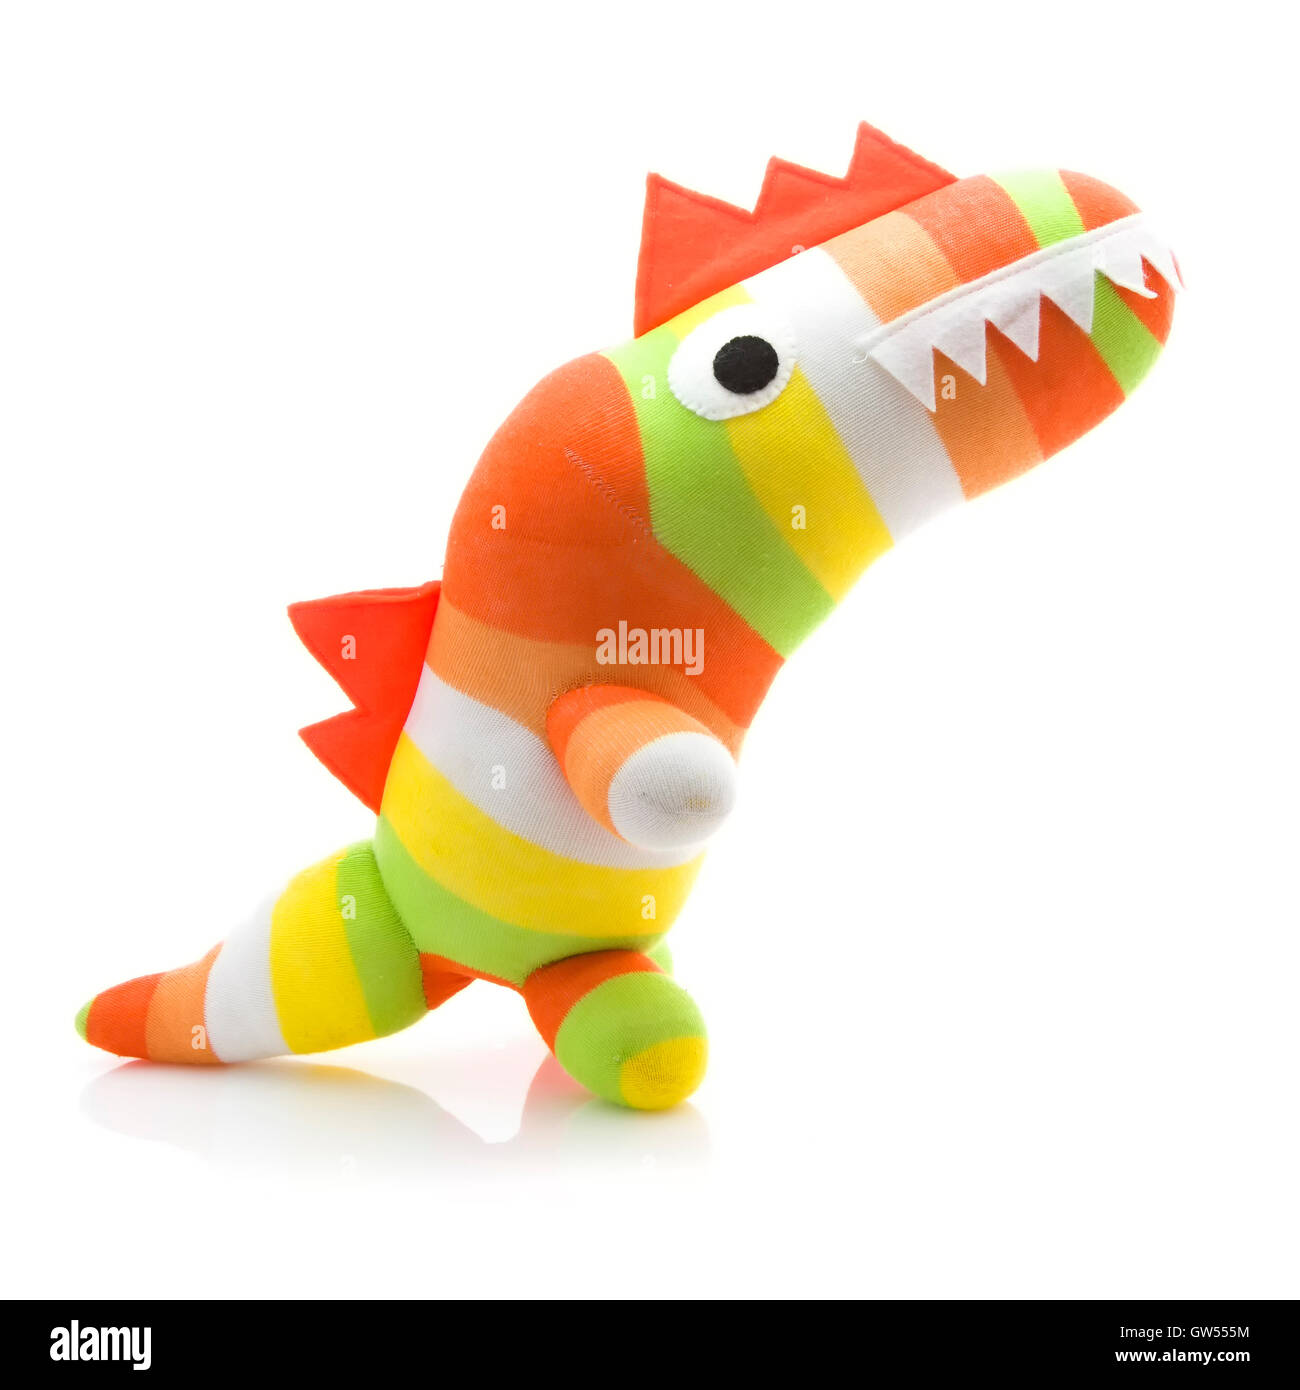 Colourful Hand Made Dinosaur on a White Background - Stock Image